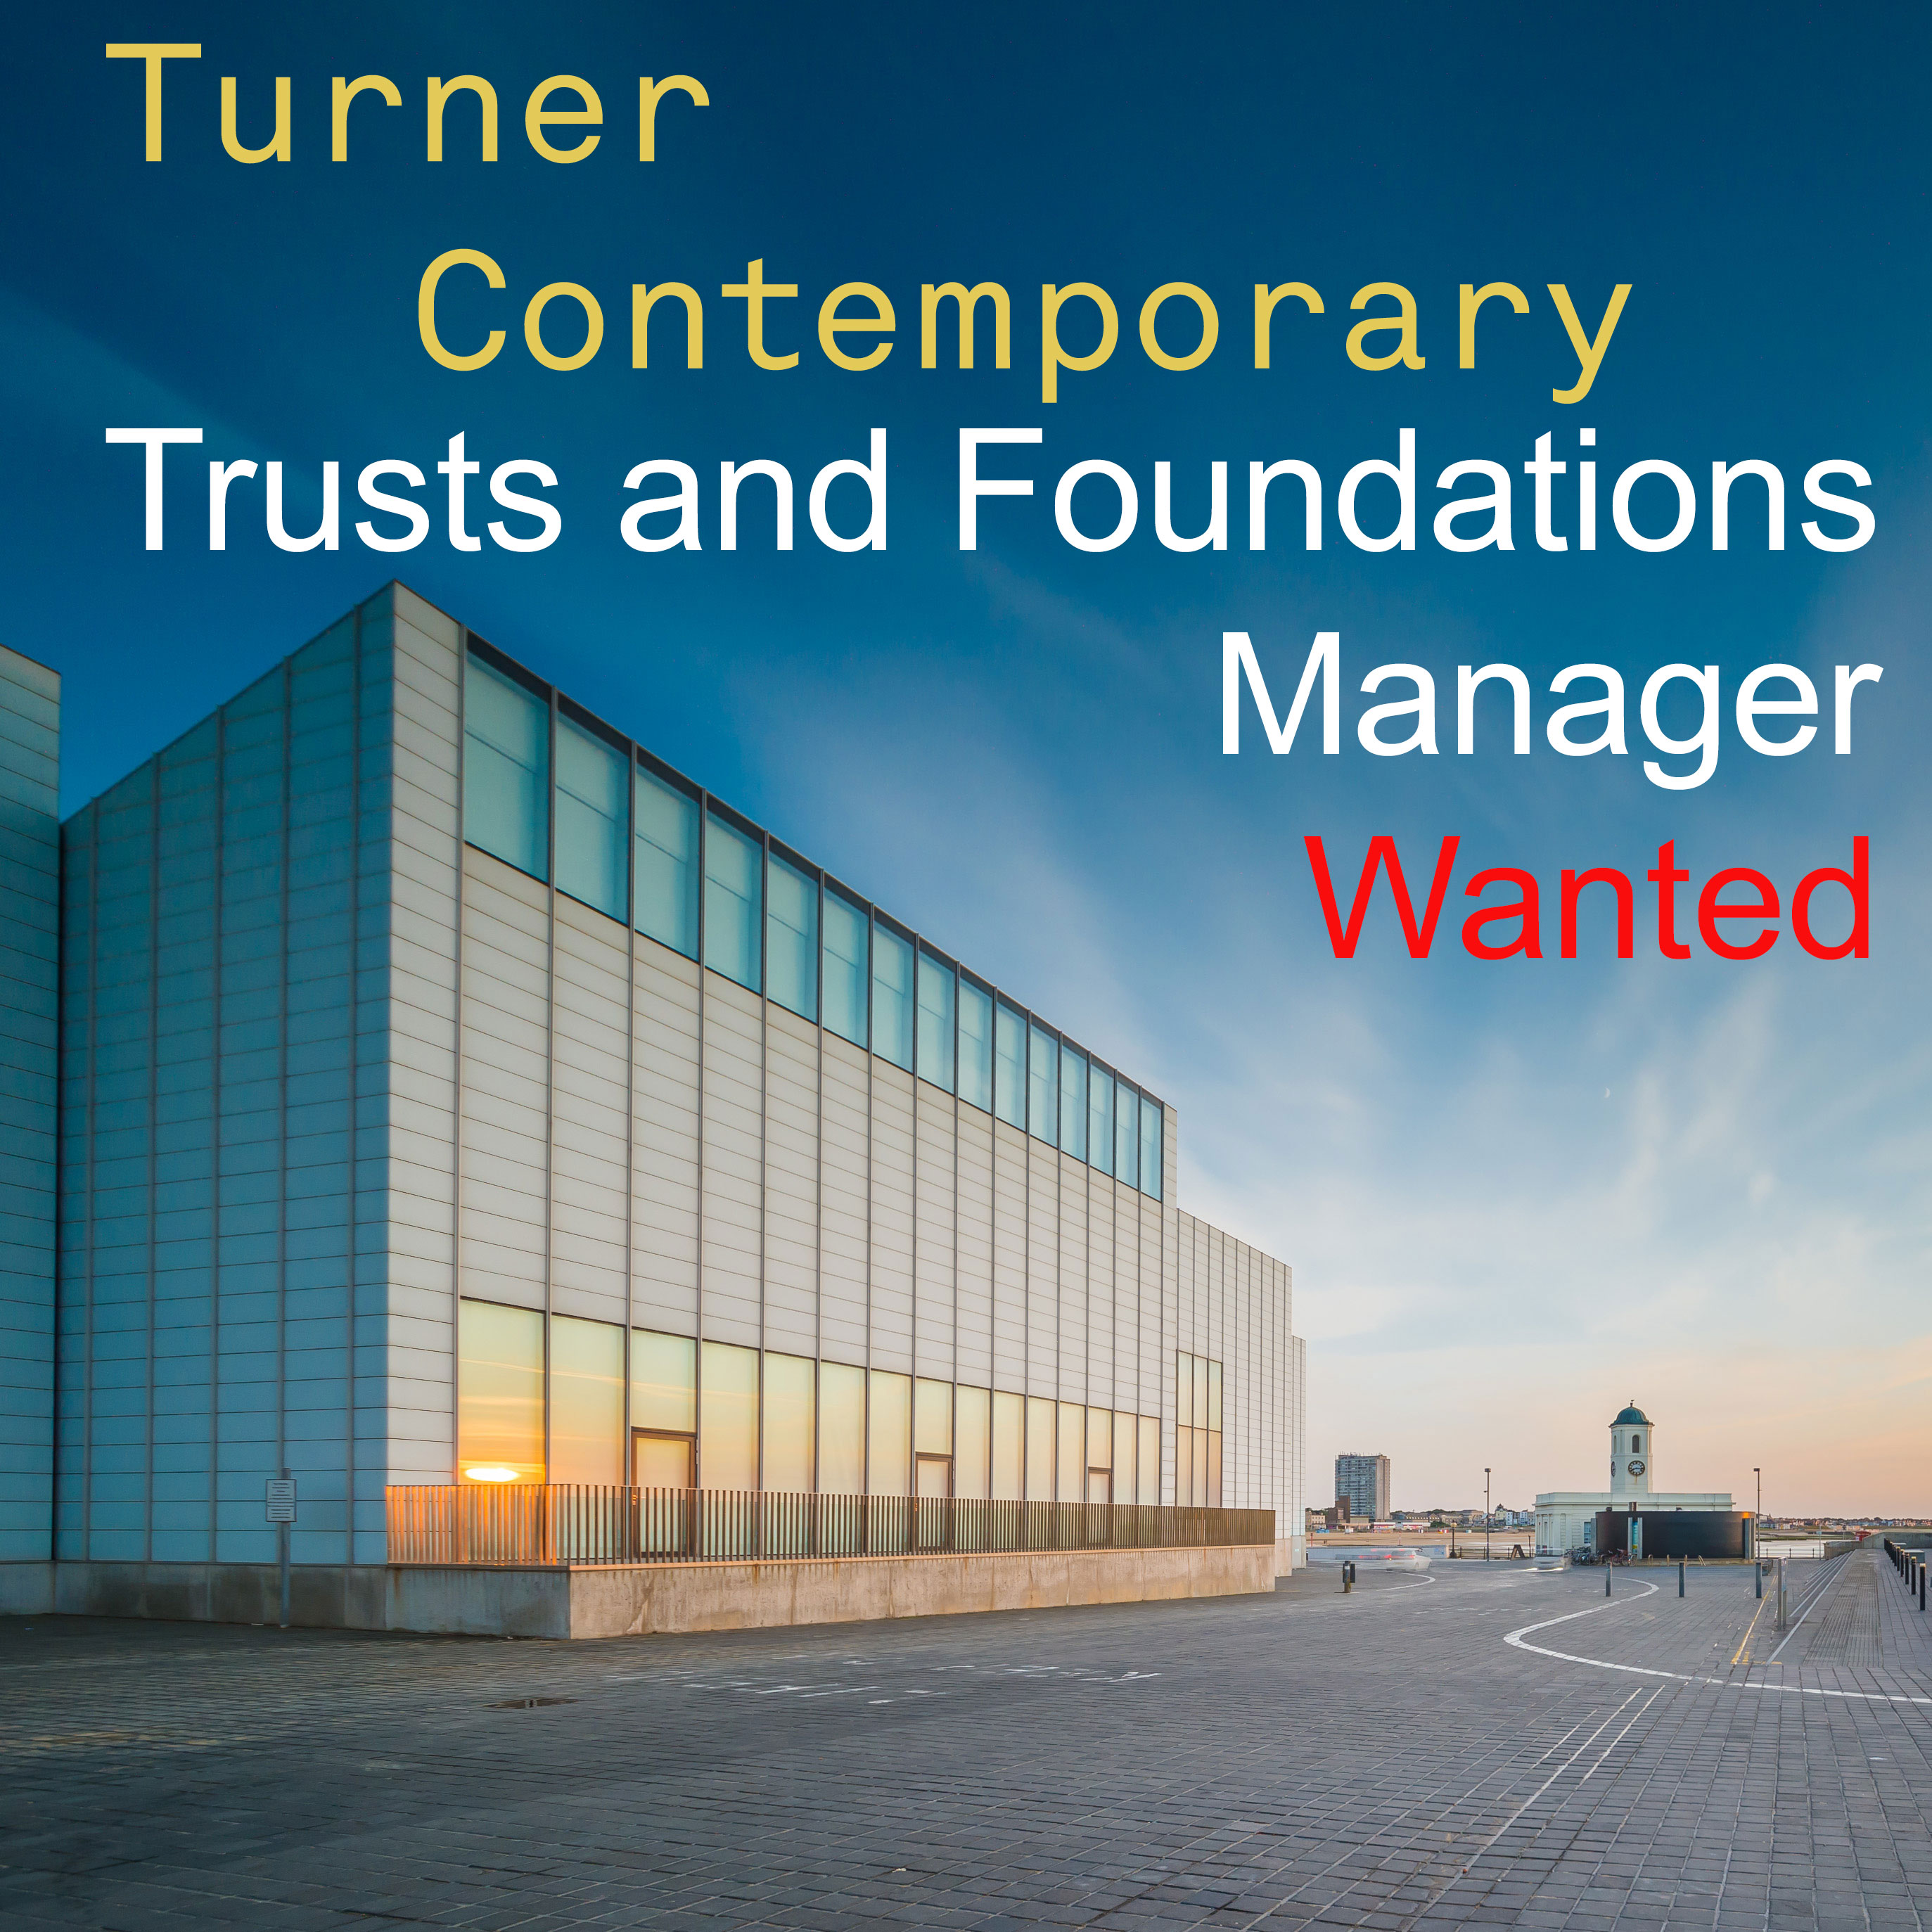 Turner Contemporary Trusts and Foundations